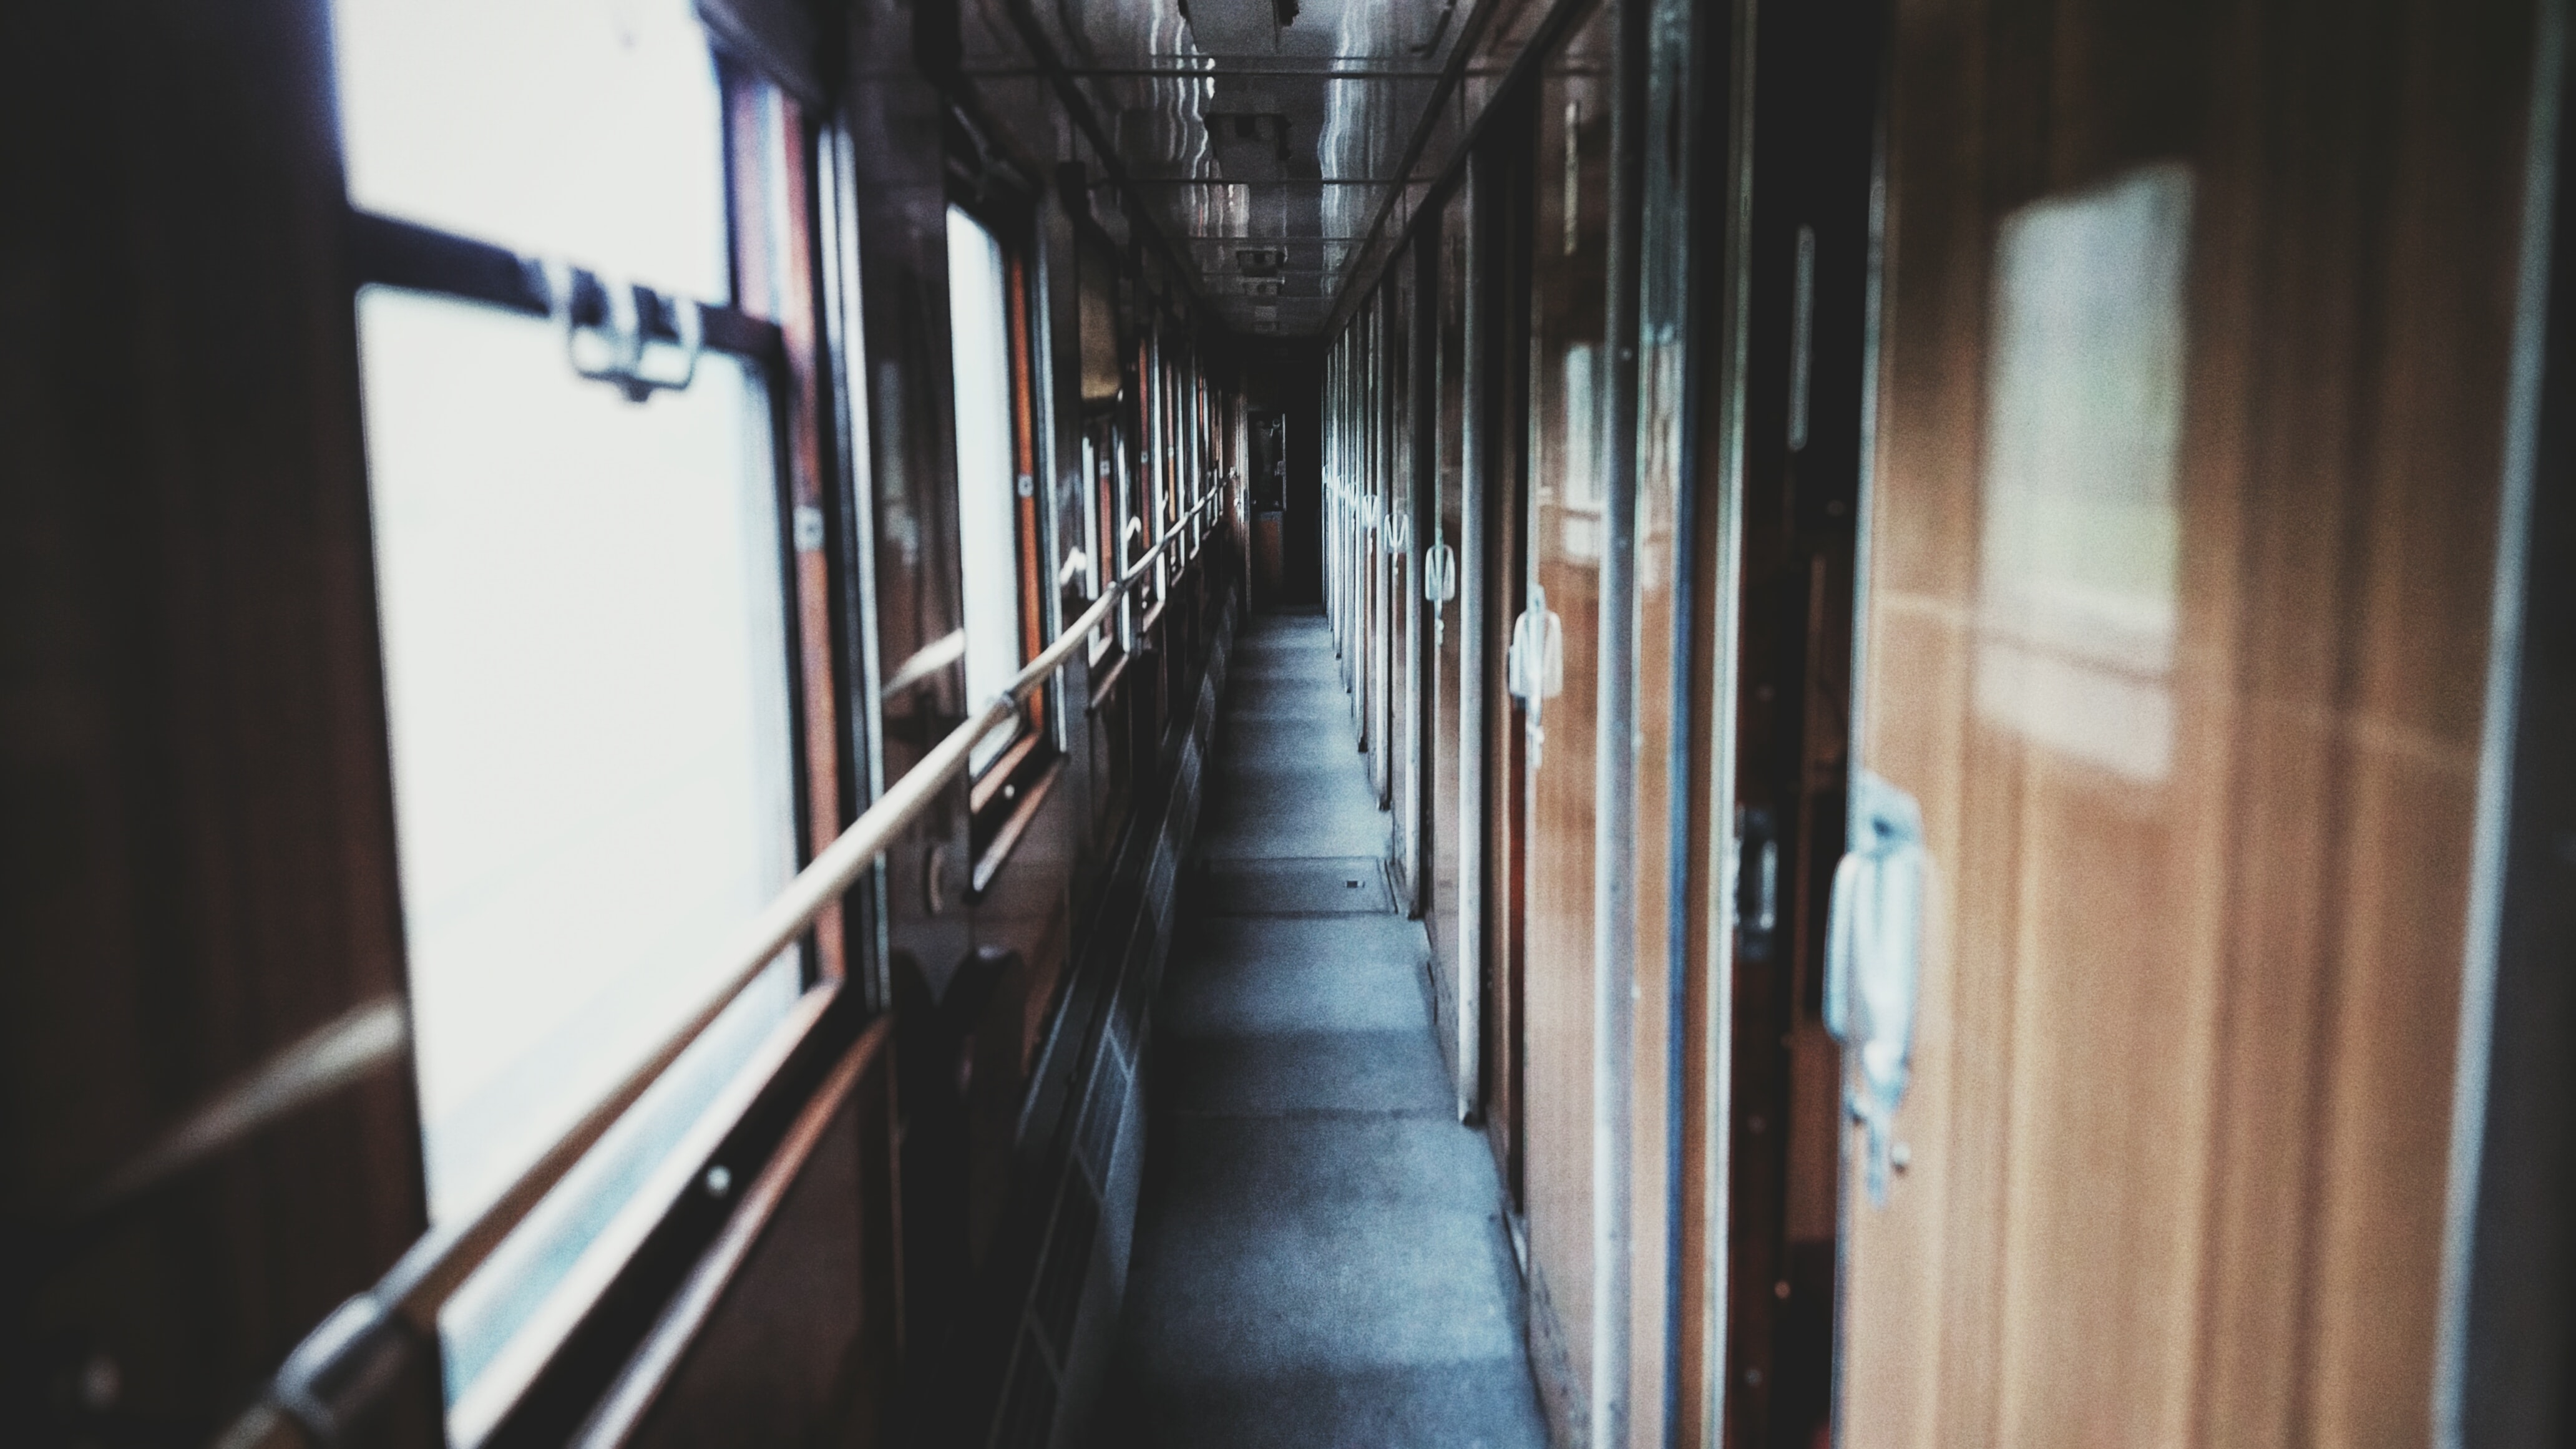 The corridor in an old passenger train